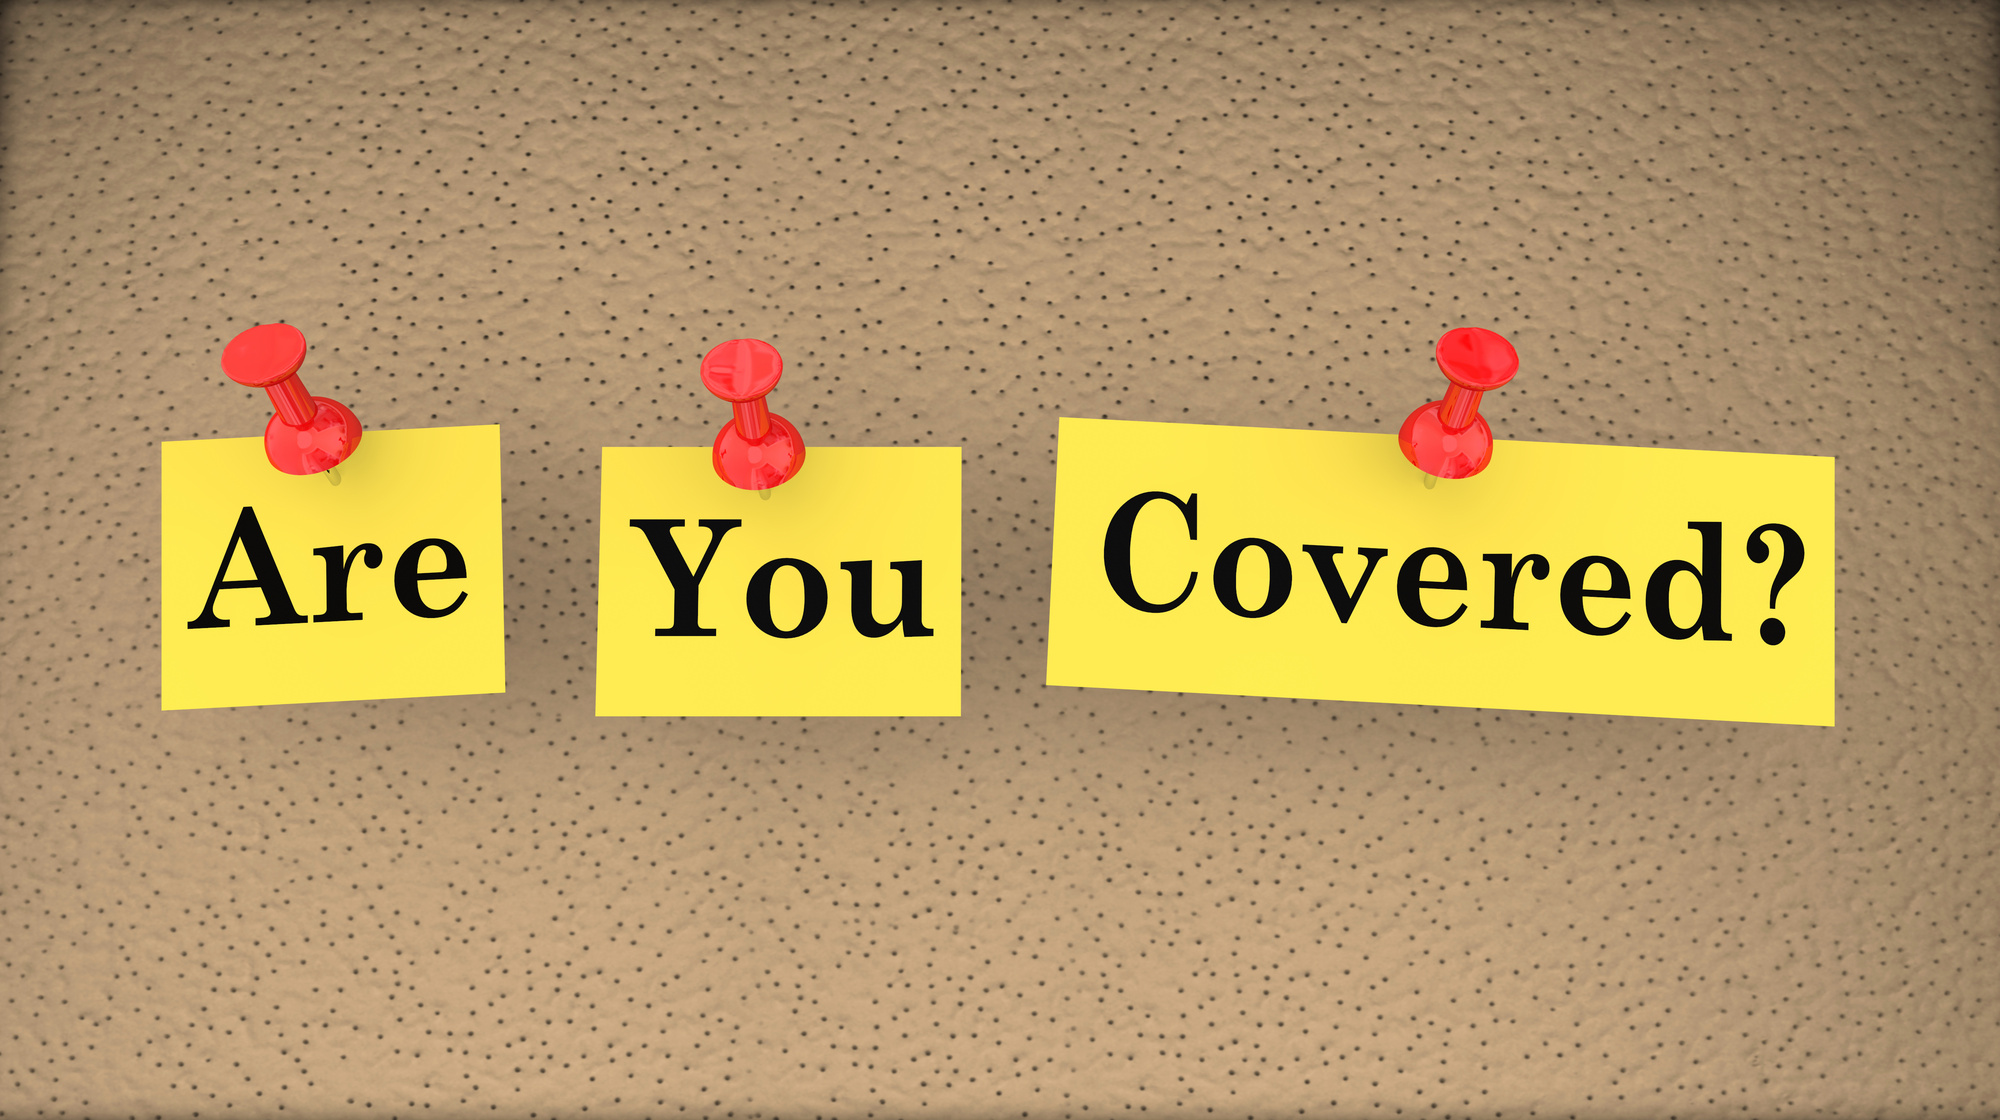 Are You Covered? words pinned on a board